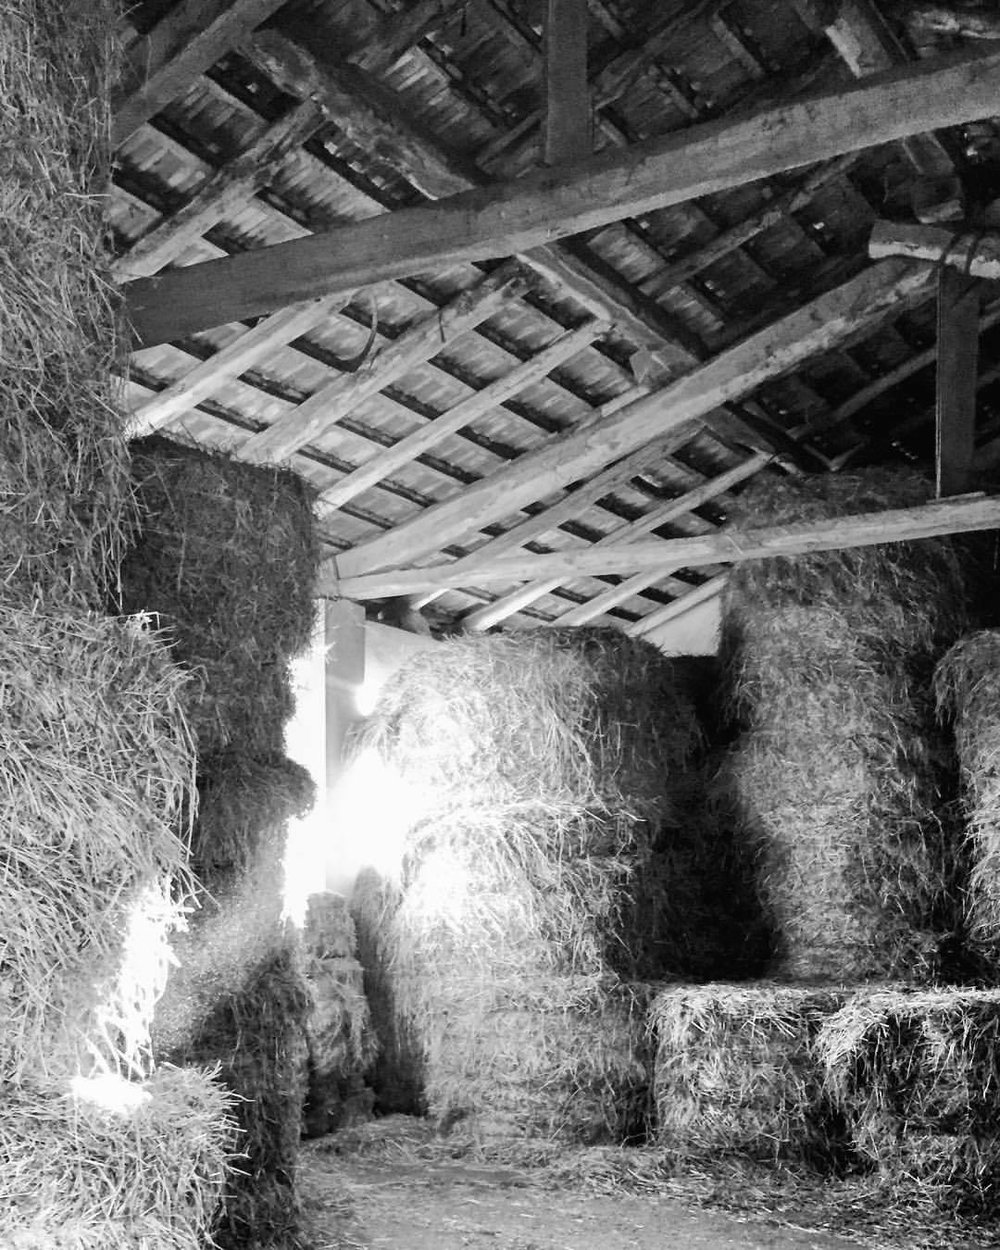 Late afternoon light streams through a hay barn,  cows wail underfoot  waiting to be fed.  A neighboring field,   stubbly from last year's corn harvest   alights with birds  and pyramids of manure,  like dark stacks   imagined by Van Gogh,  their steam rising  against the reds  of the setting sun.  #italy #piedmont #langhe #farmlife  (at Strada Romantica delle Langhe e del Roero)